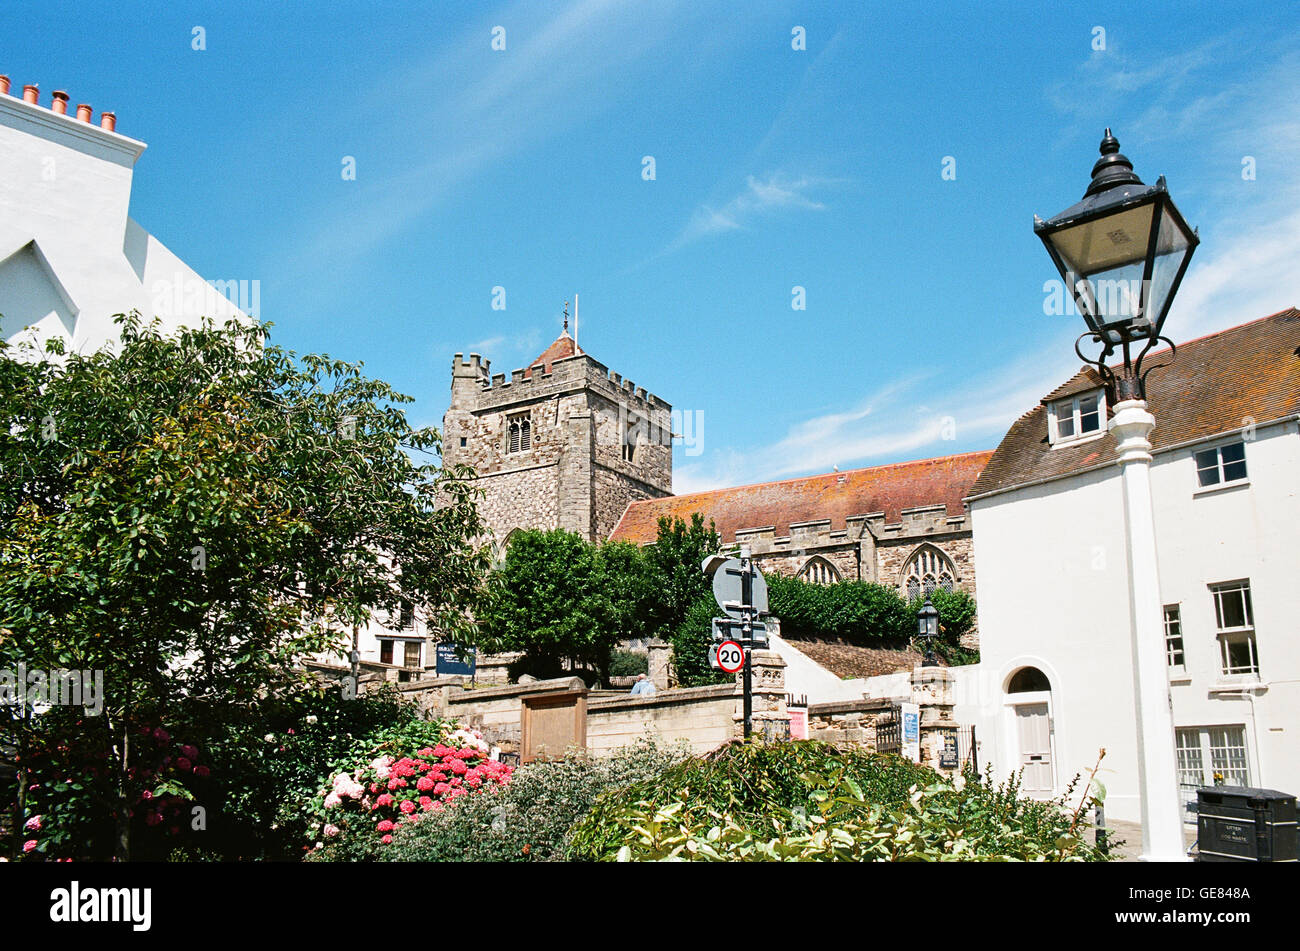 Hastings Old Town, East Sussex, UK, with St Clements church, in summertime - Stock Image